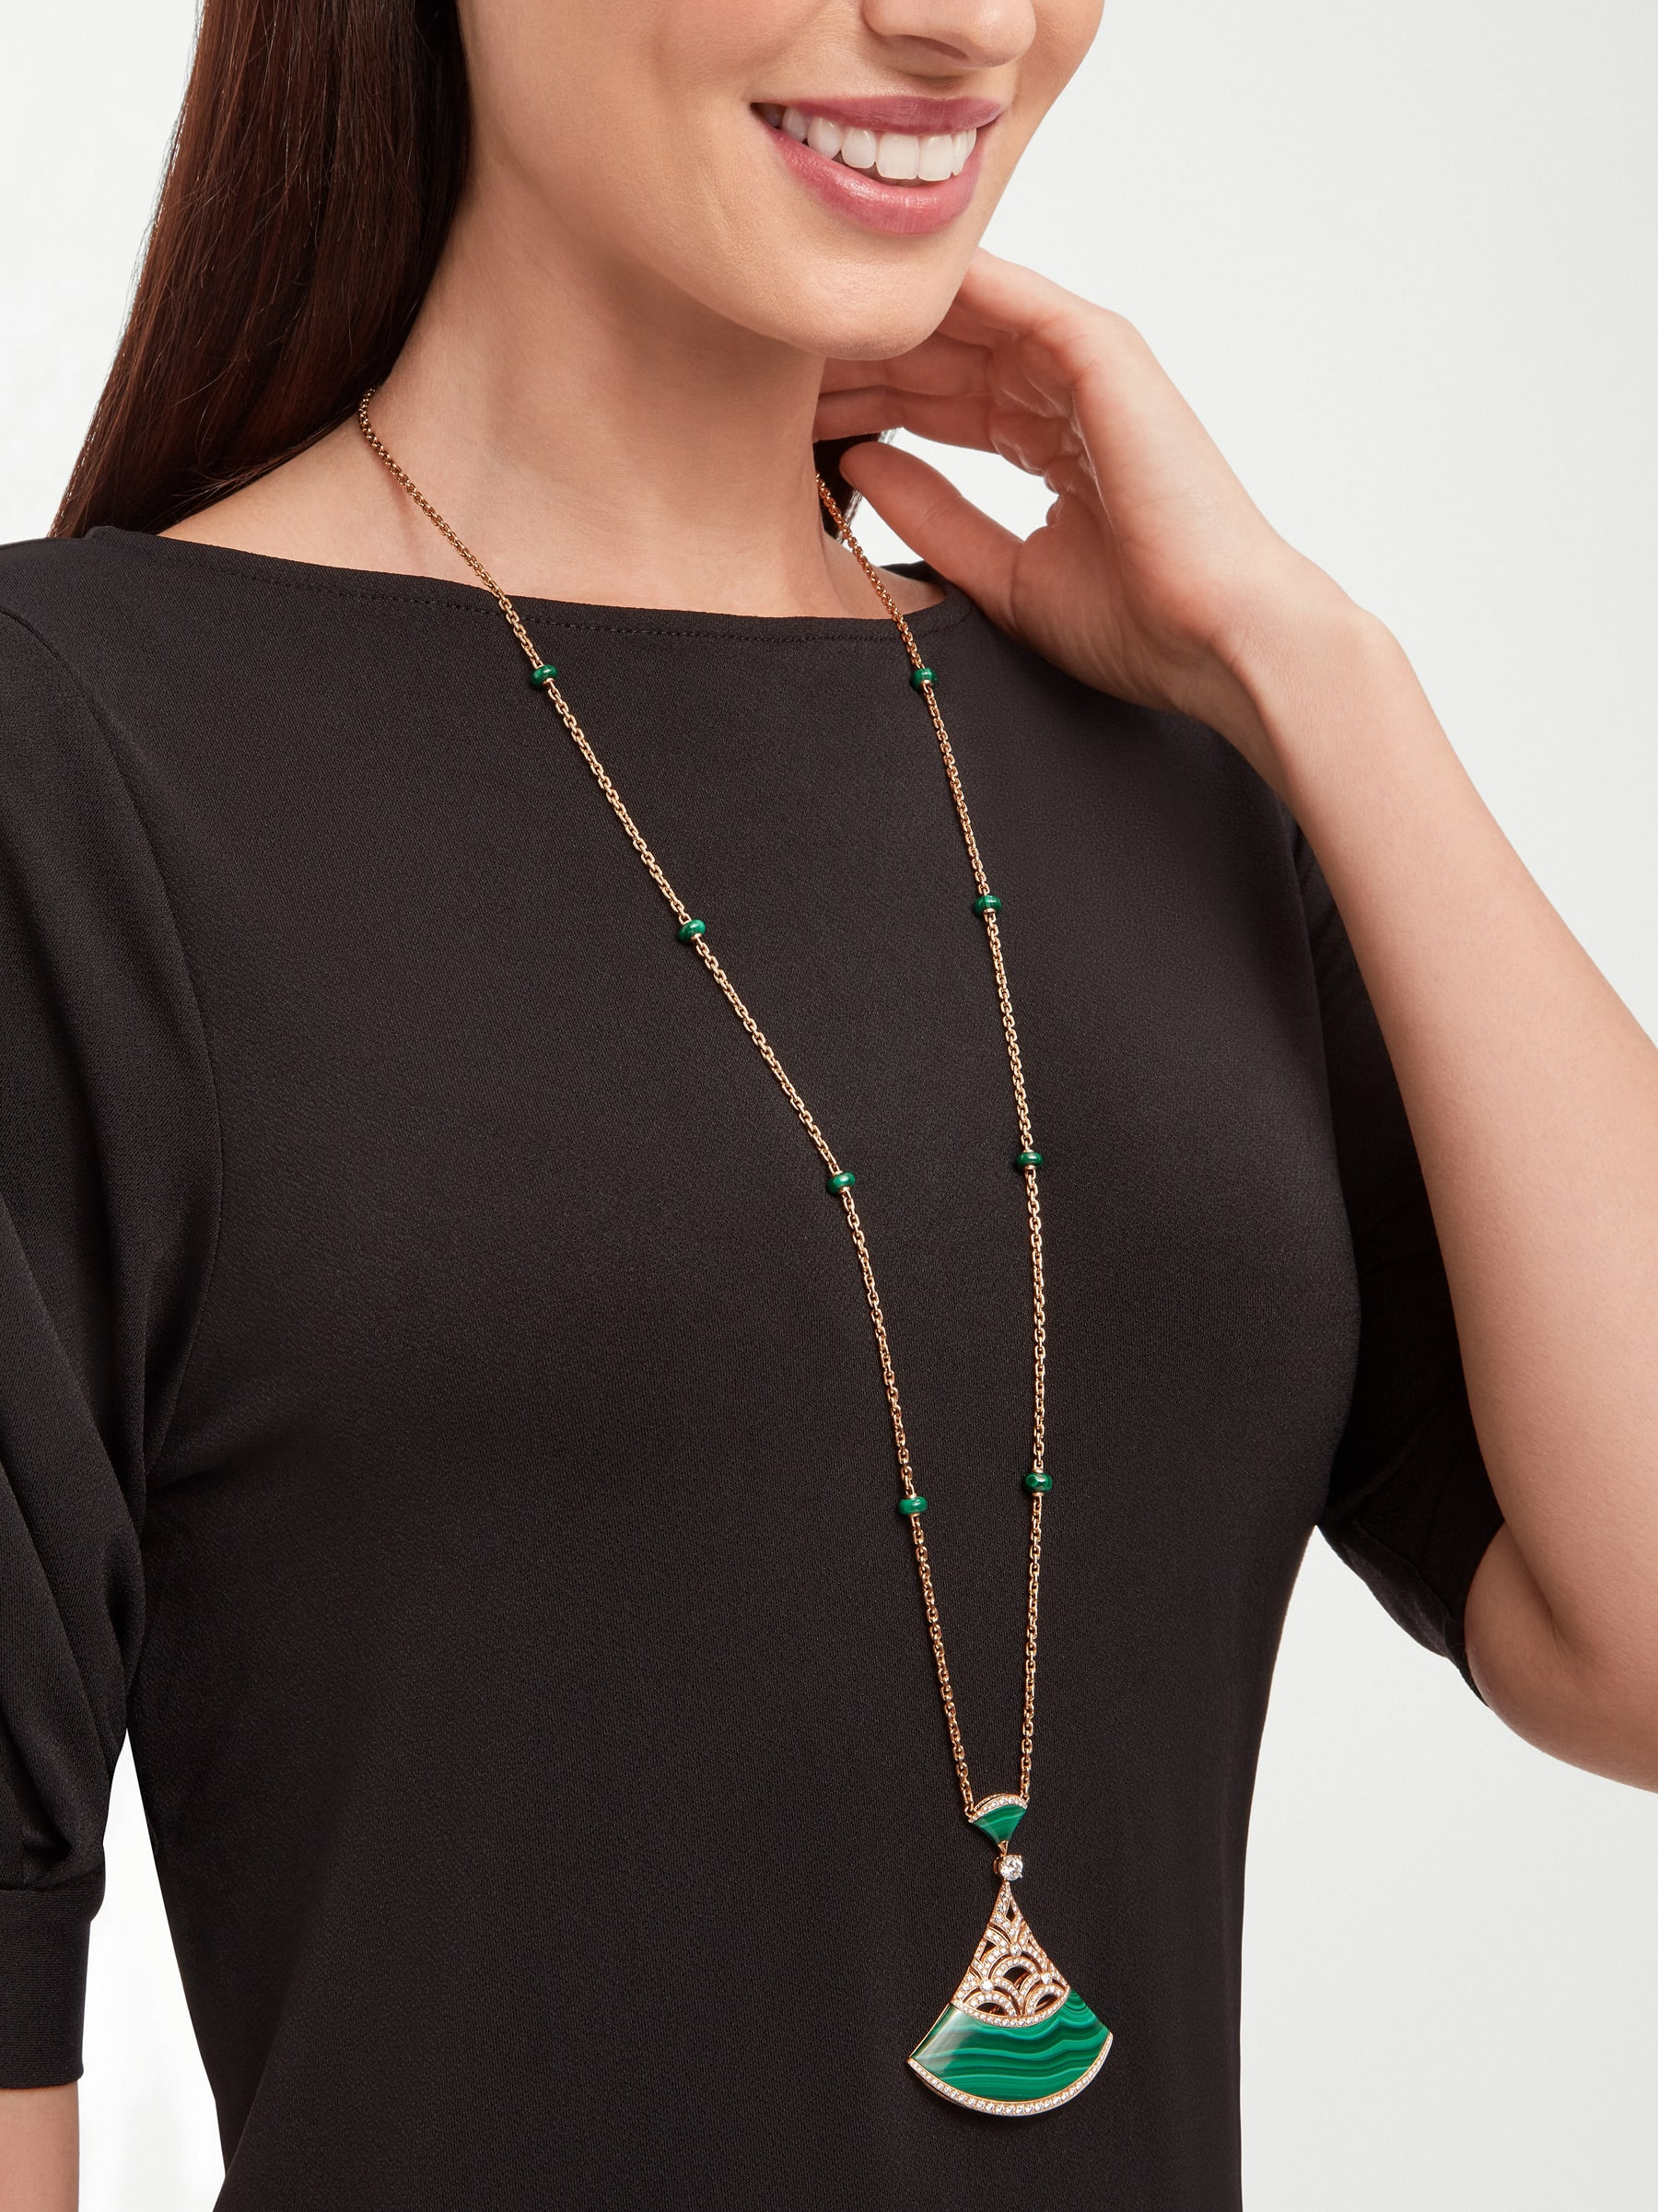 Divas' Dream necklace with 18 kt rose gold chain set with malachite beads and diamonds, and 18 kt rose gold openwork pendant set with a diamond (0.50 ct), pavé diamonds and malachite inserts. Special edition exclusive to Middle East 358222 image 4